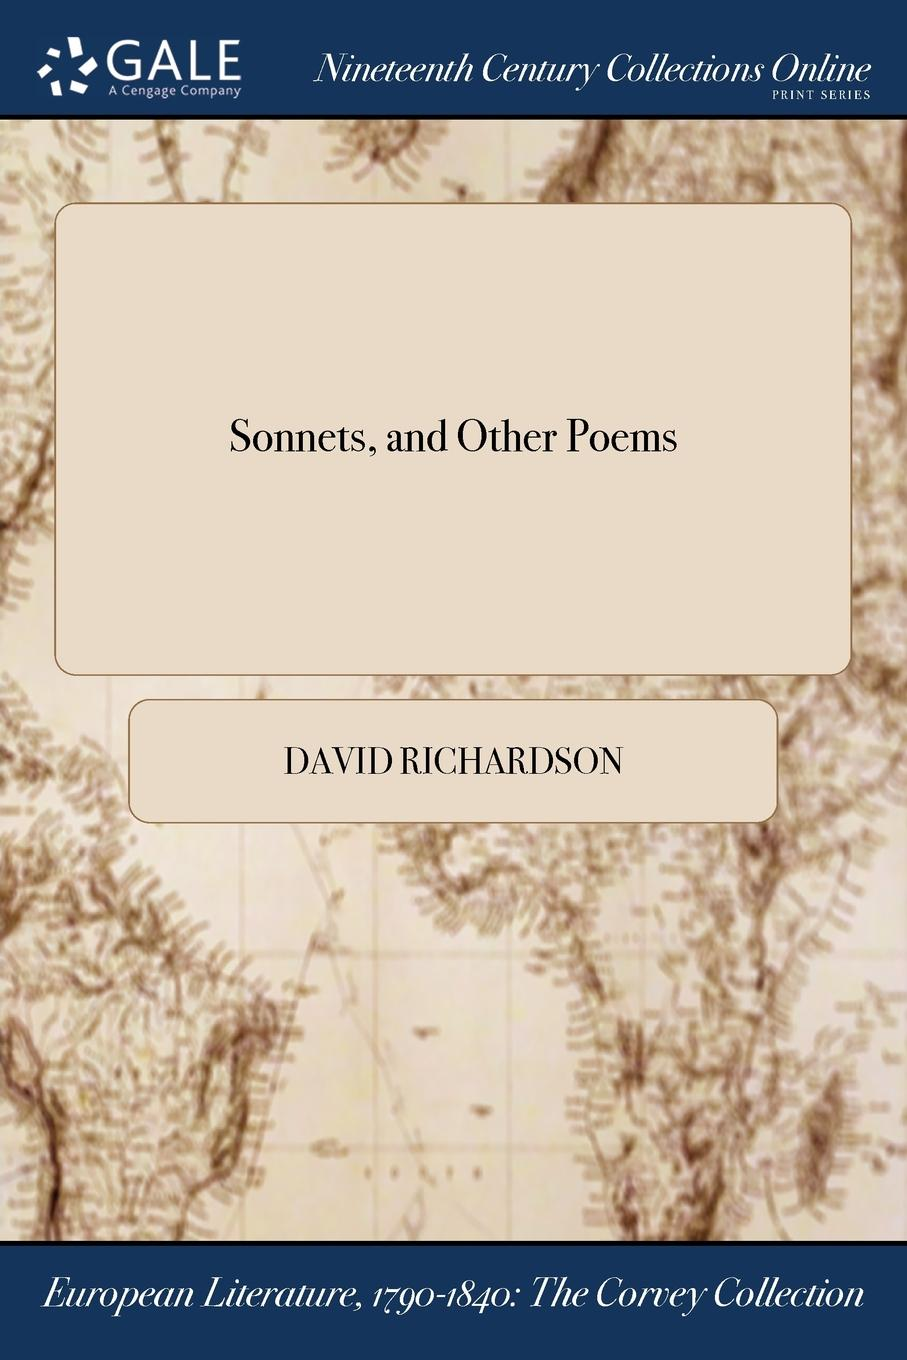 David Richardson Sonnets, and Other Poems